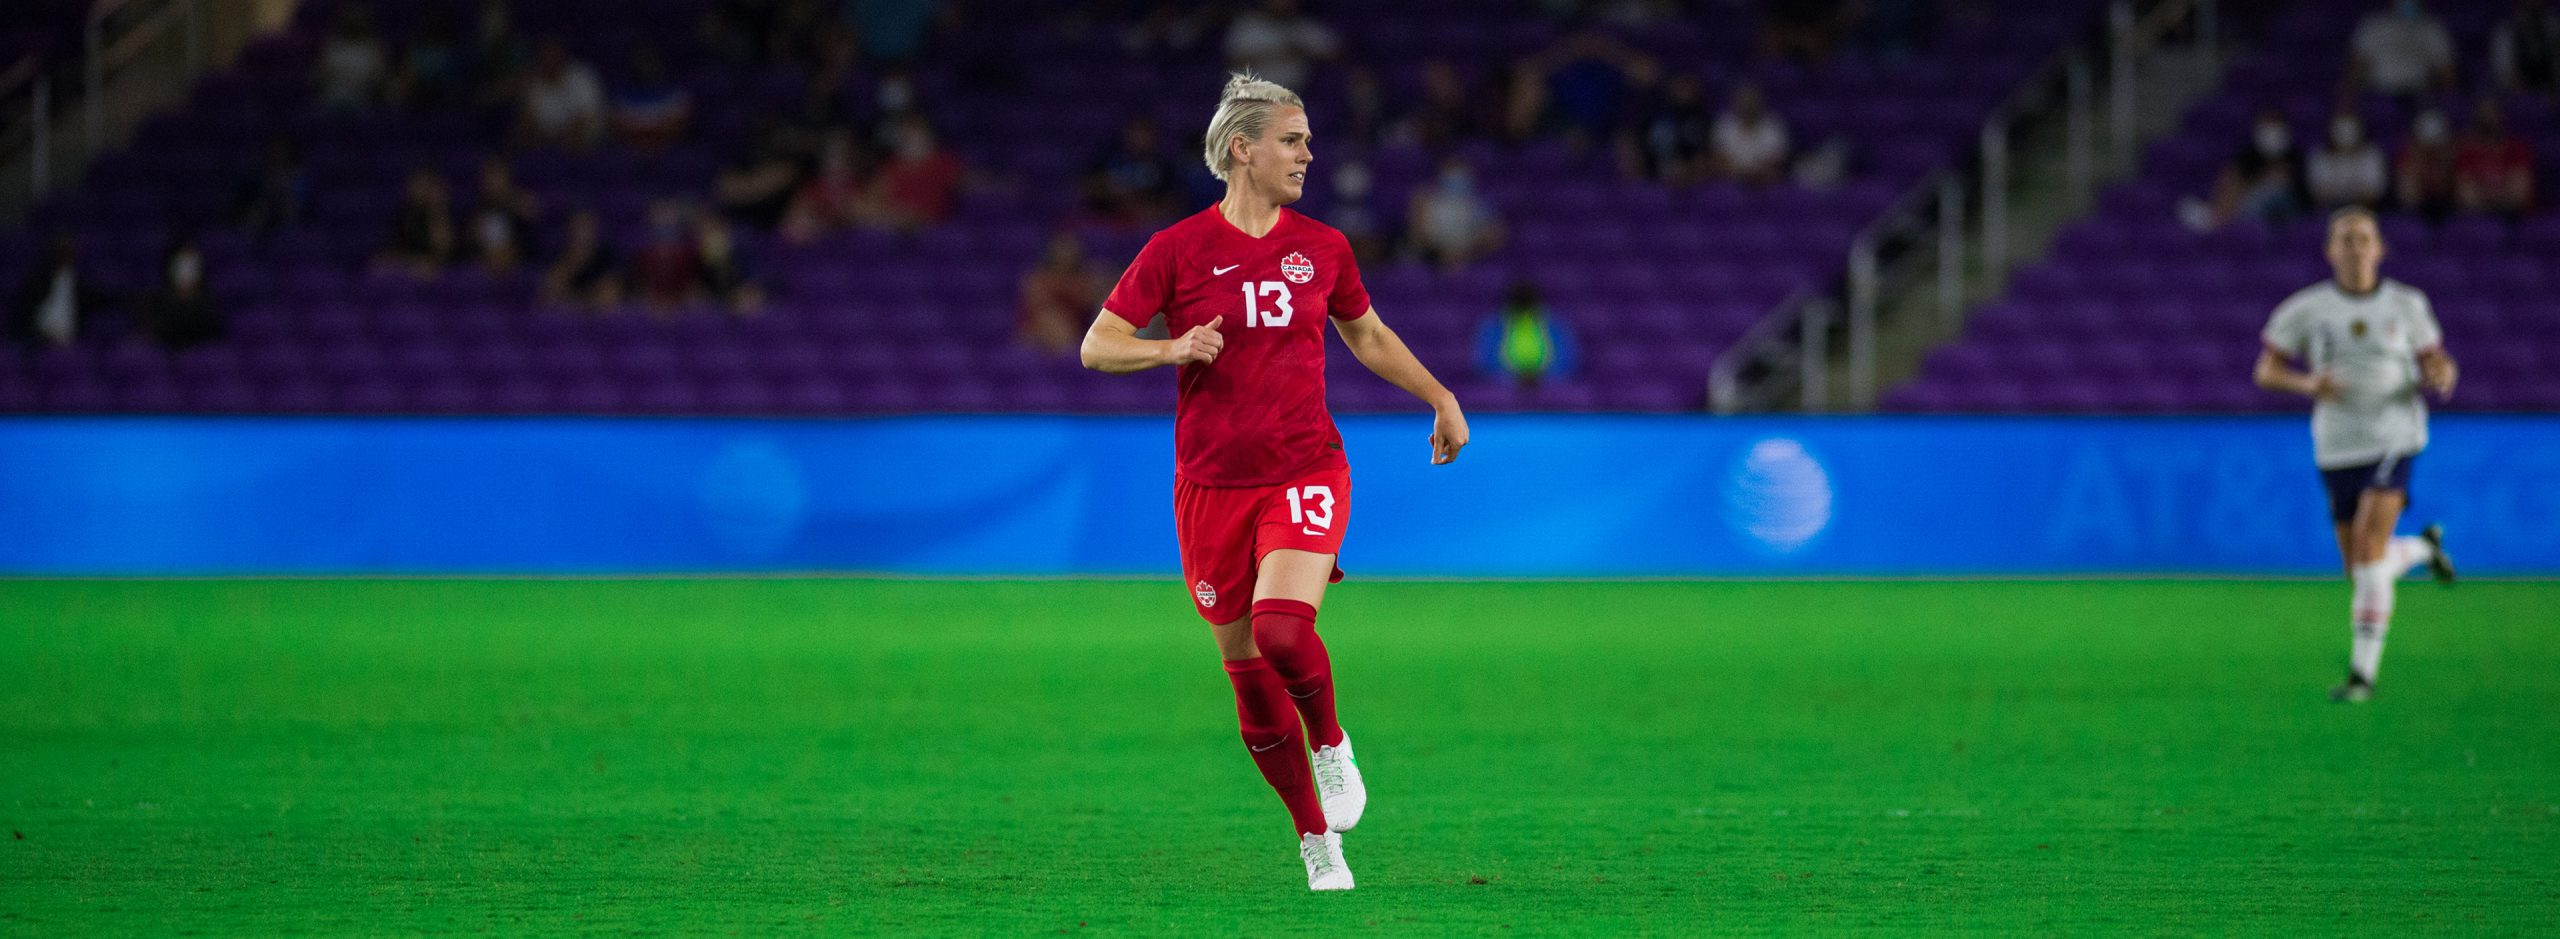 Sophie Schmidt makes her 200th appearance